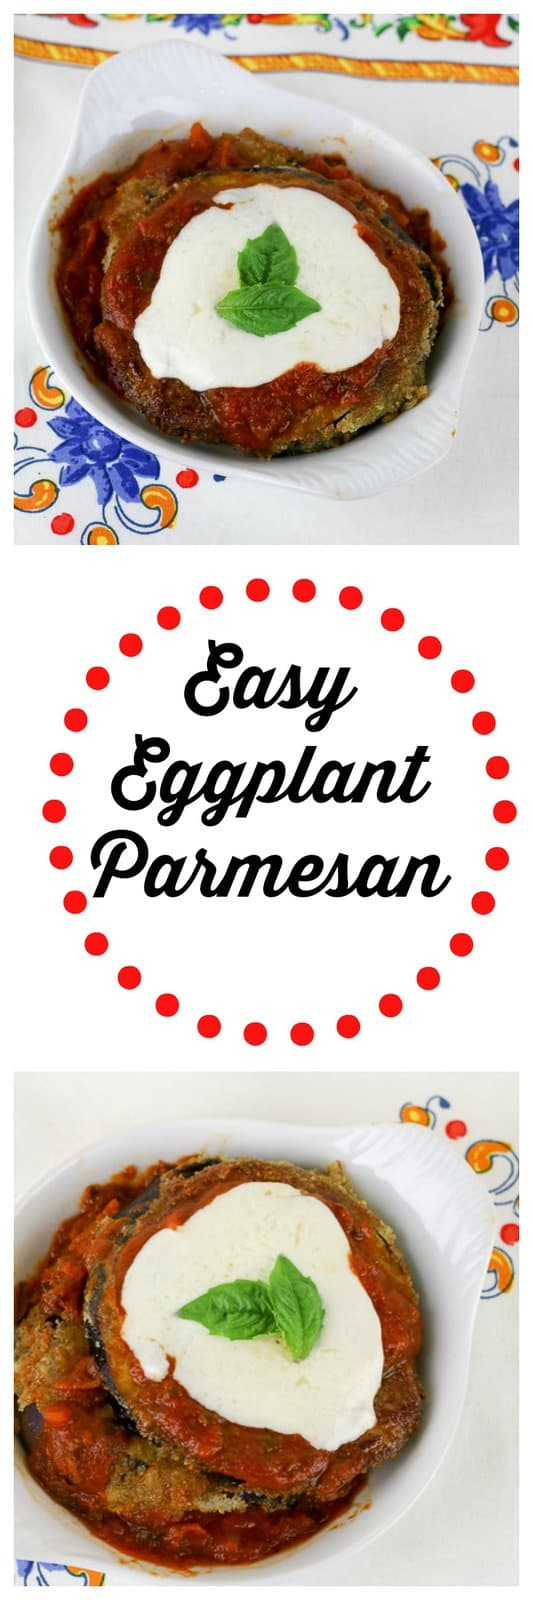 Easy Eggplant Parmesan is perfect for a Meatless Monday Meal.